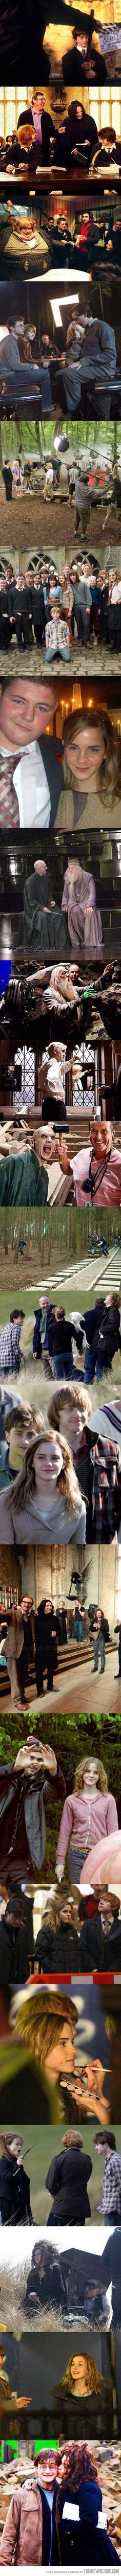 This is worth it for the picture of Dumbledore and Voldemort alone...set pictures <3